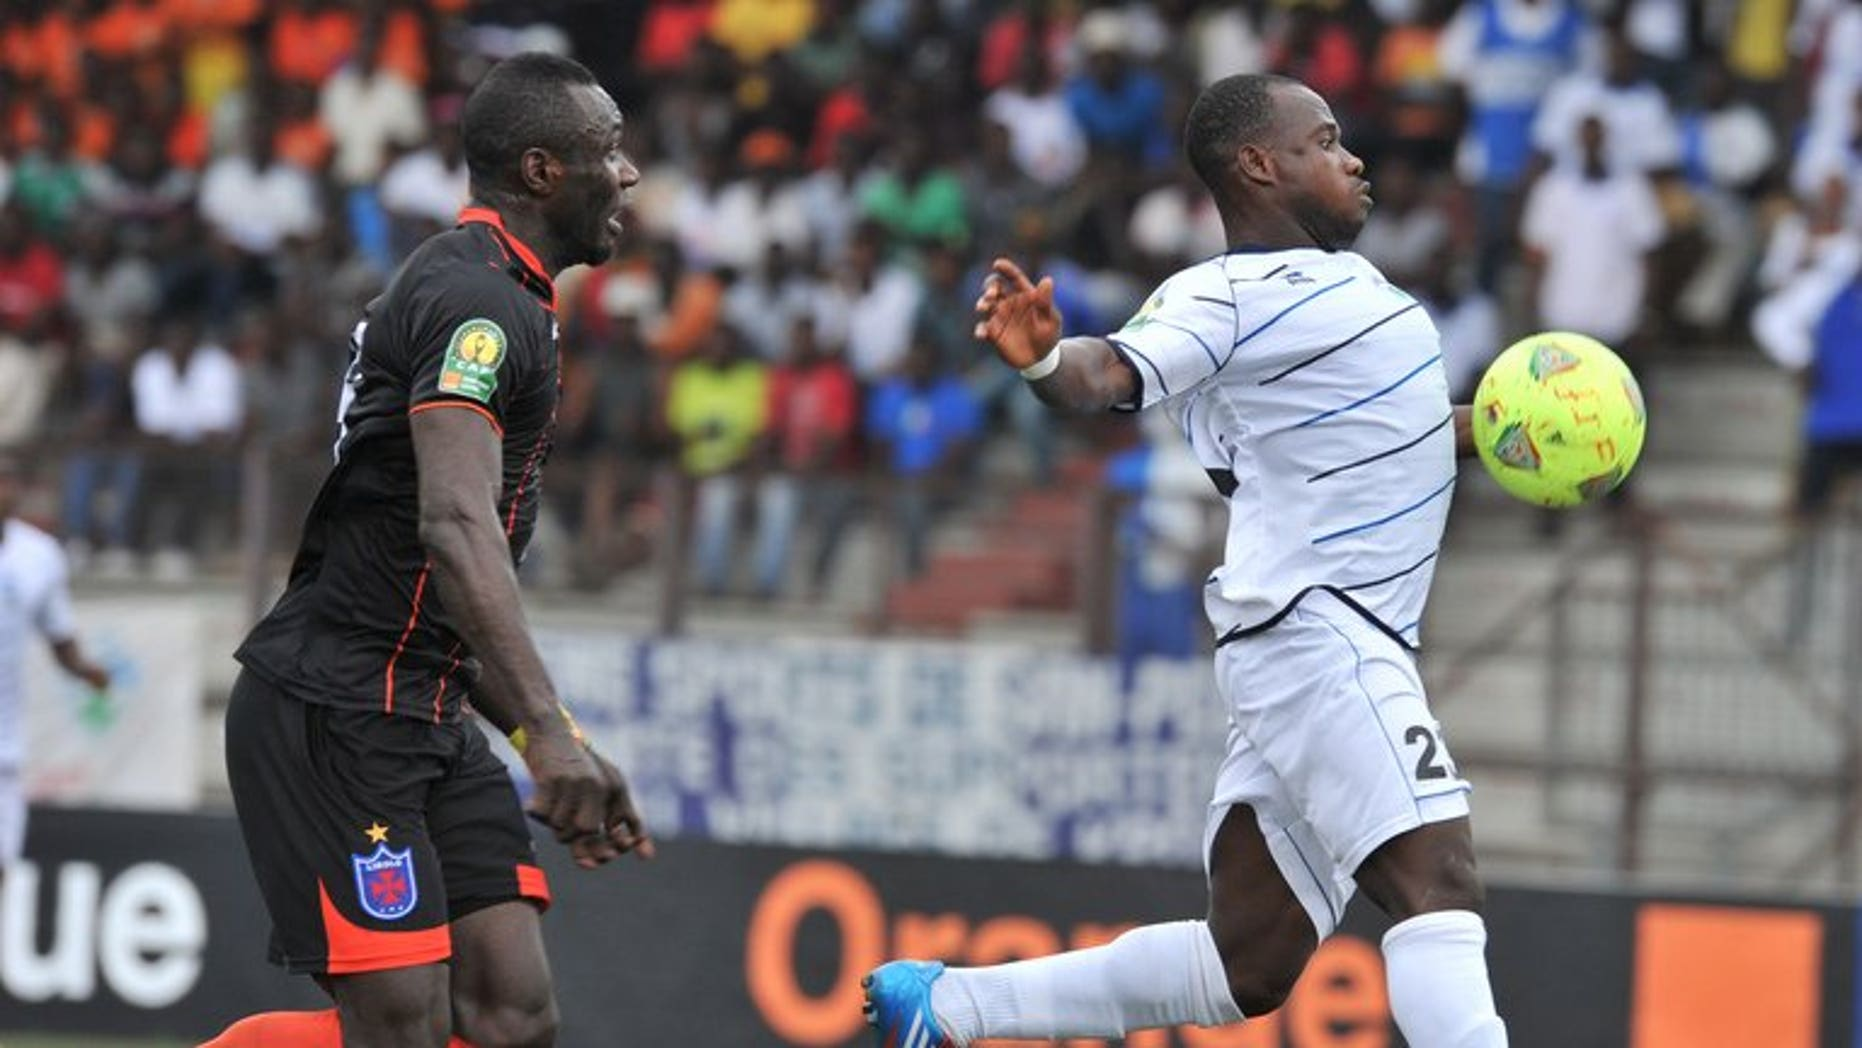 Ivory Coast's Sewe player Kevin Zougoula (right) vies for the ball with Recreativo Libolo of Angola player Edy Nycolas-Boyom during their African Champions league match at the Robert Champroux stadium in Abidjan on August 3, 2013. Zougoula scored a CAF Champions League hat-trick this weekend as Ivory Coast club Sewe San Pedro made a winning Group B debut.